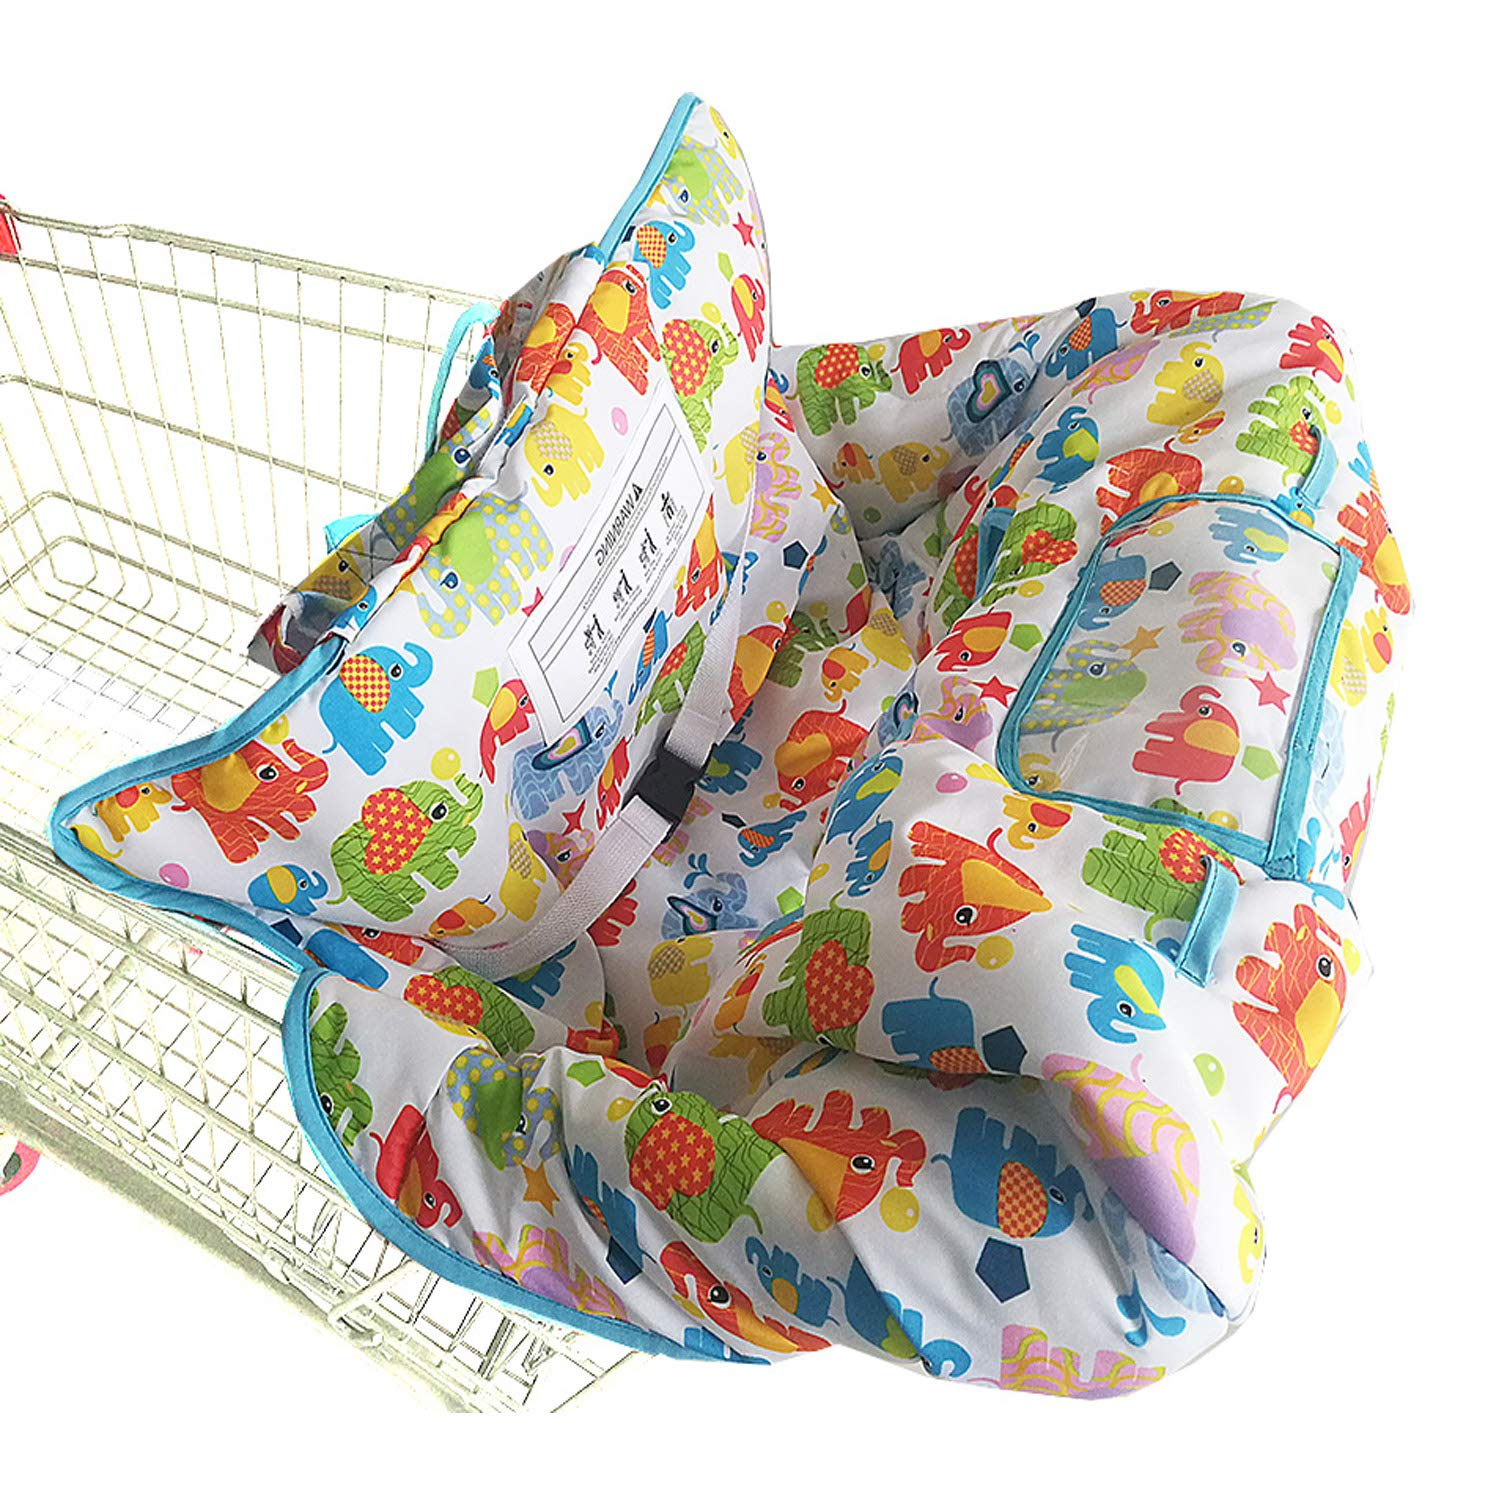 Shopping Cart Cover for Baby- 2-in-1 - Foldable Portable Seat with Bag for Infant to Toddler - Compatible with Grocery Cart Seat and High Chair - White Elephant Pattern